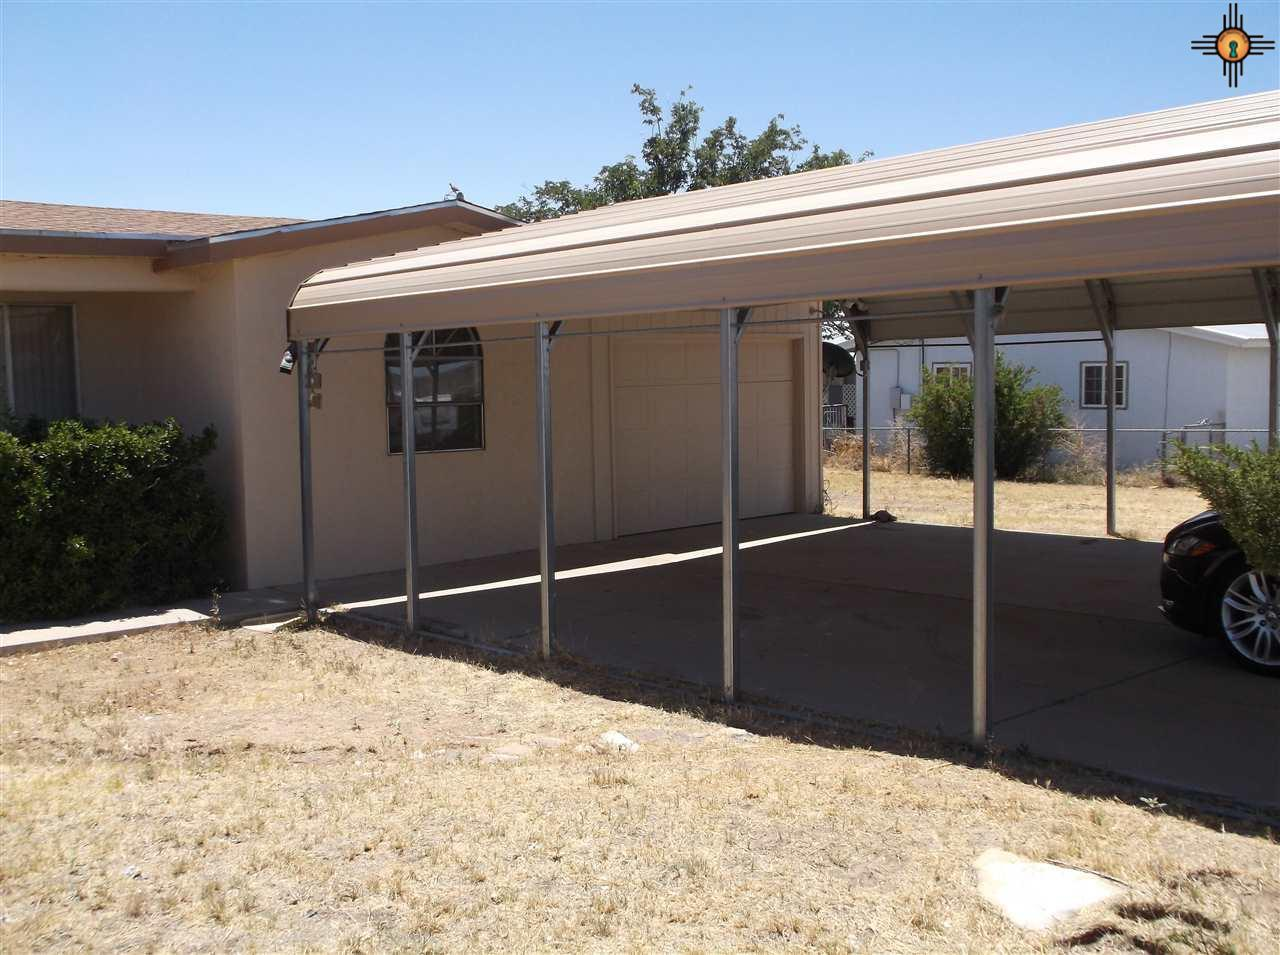 3 bed / 2 baths Home in Carlsbad for $175,000